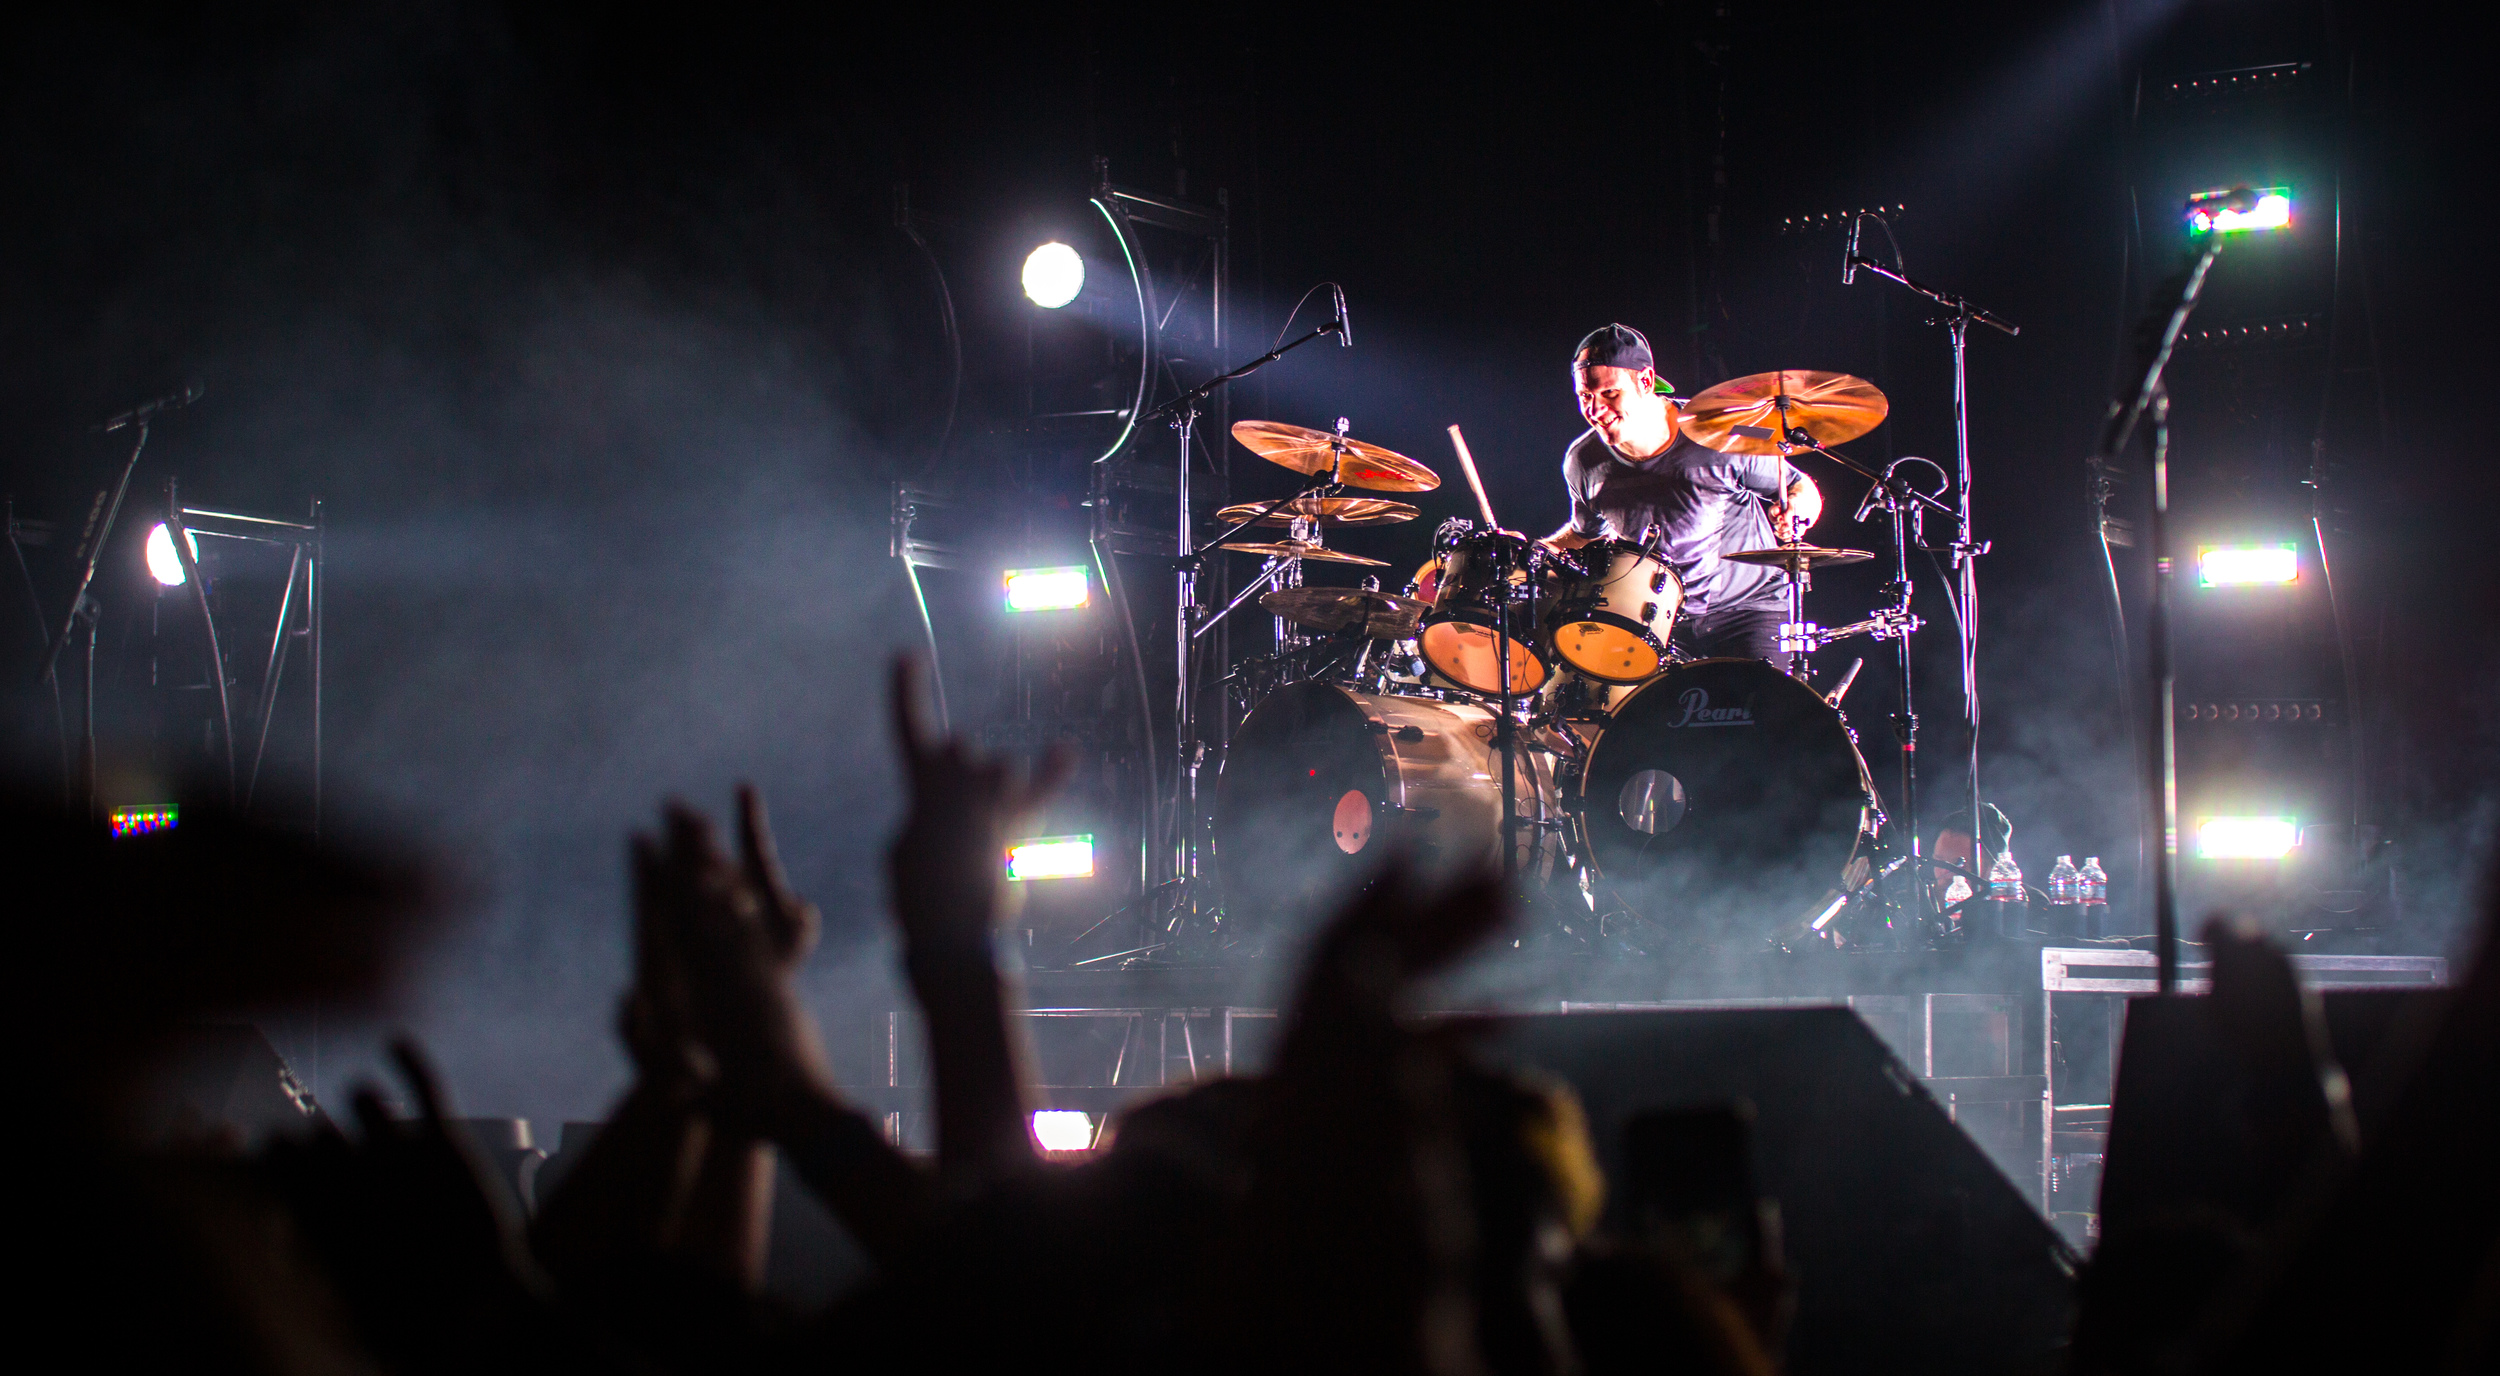 Jason Bowld during the drum solo